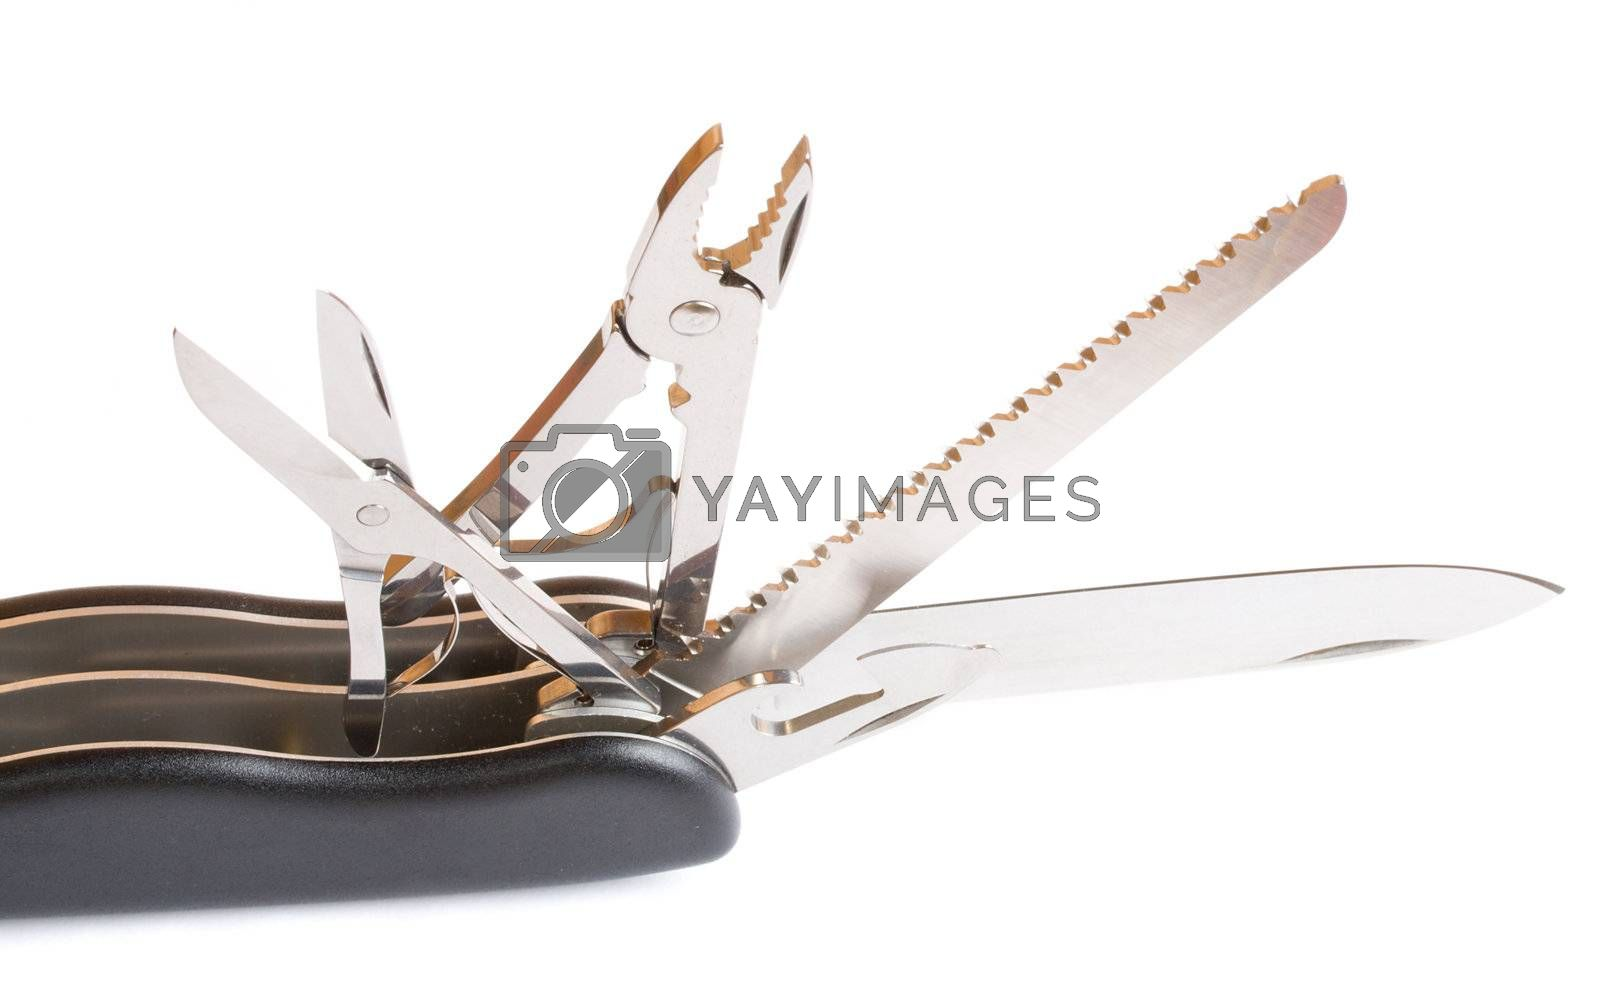 Royalty free image of opened black army penknife by Alekcey